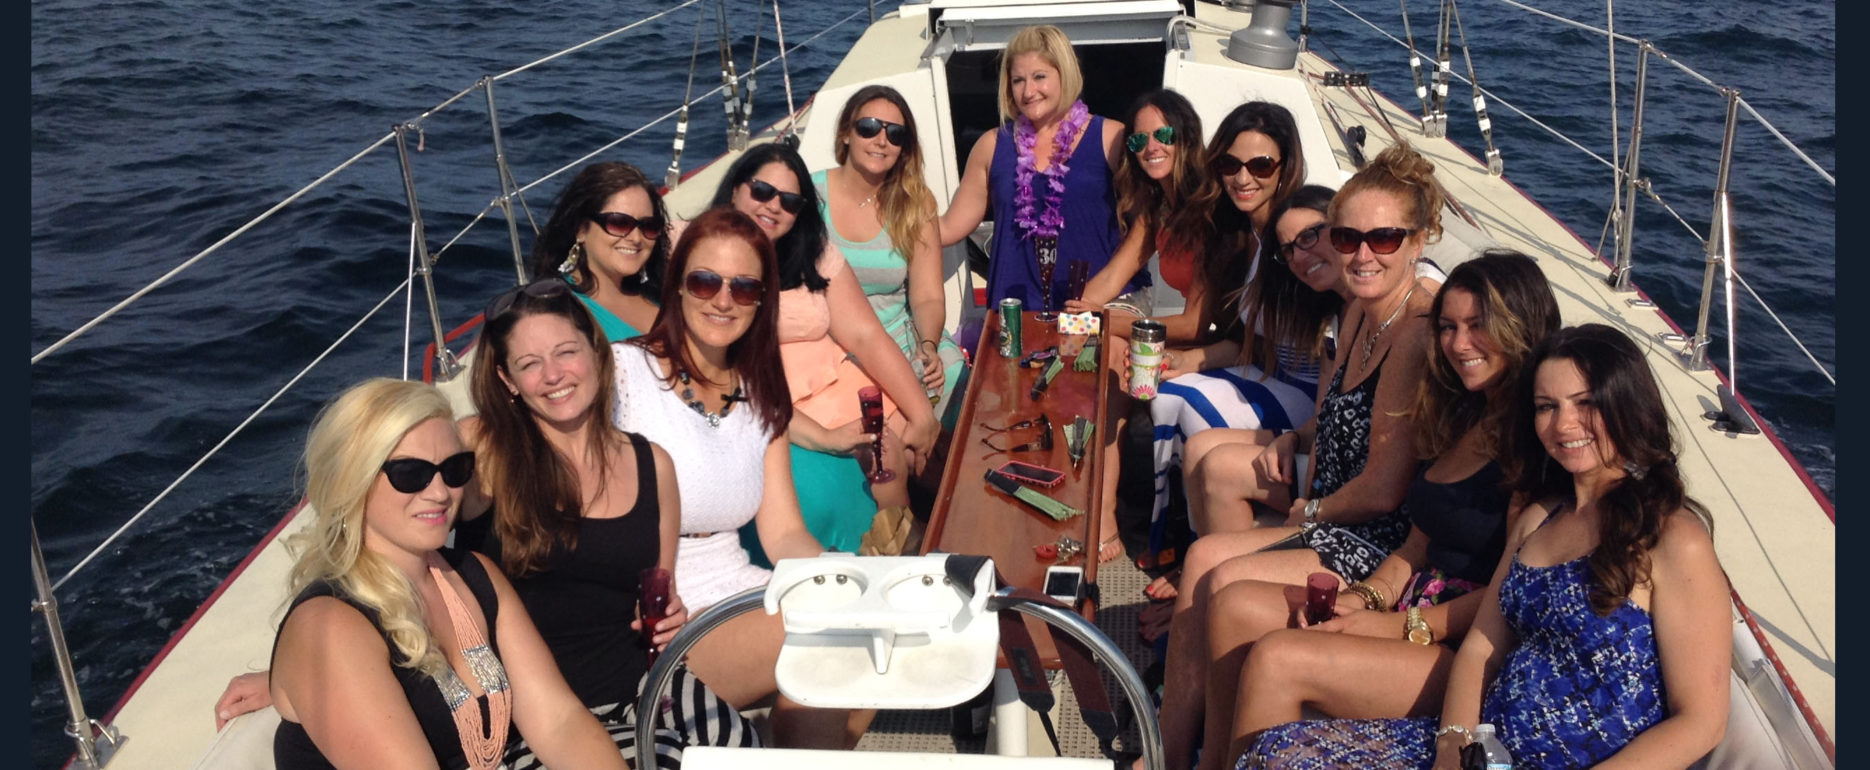 Bachelorette & Bachelor Parties